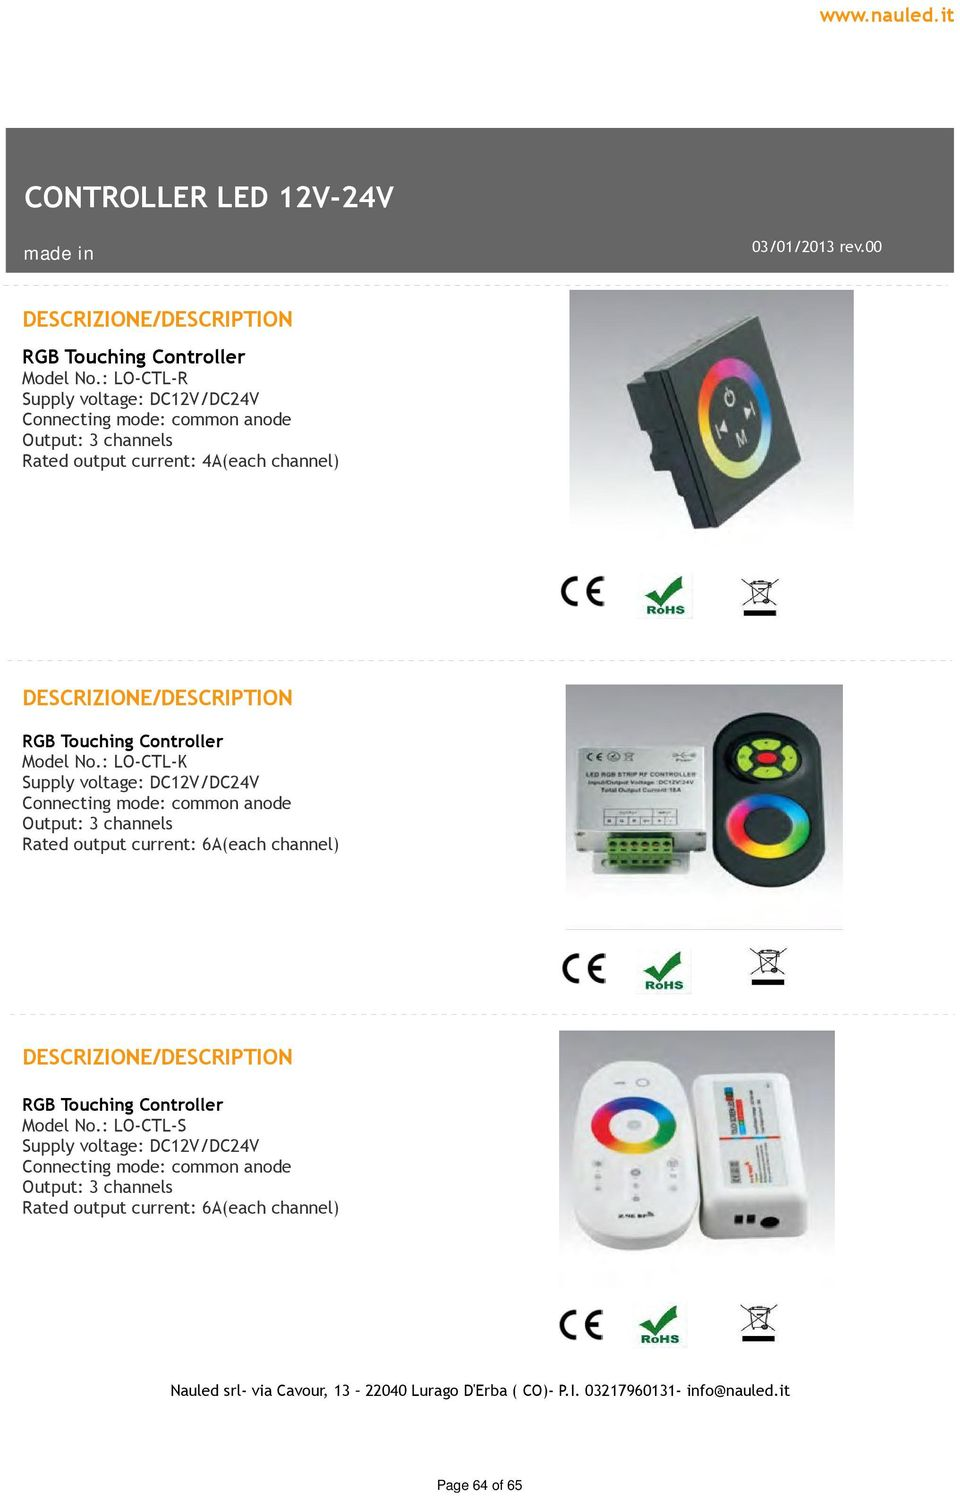 No.: LO-CTL-K Supply voltage: DC12V/DC24V Connecting mode: common anode Output: 3 channels Rated output current: 6A(each channel) RGB Touching Controller